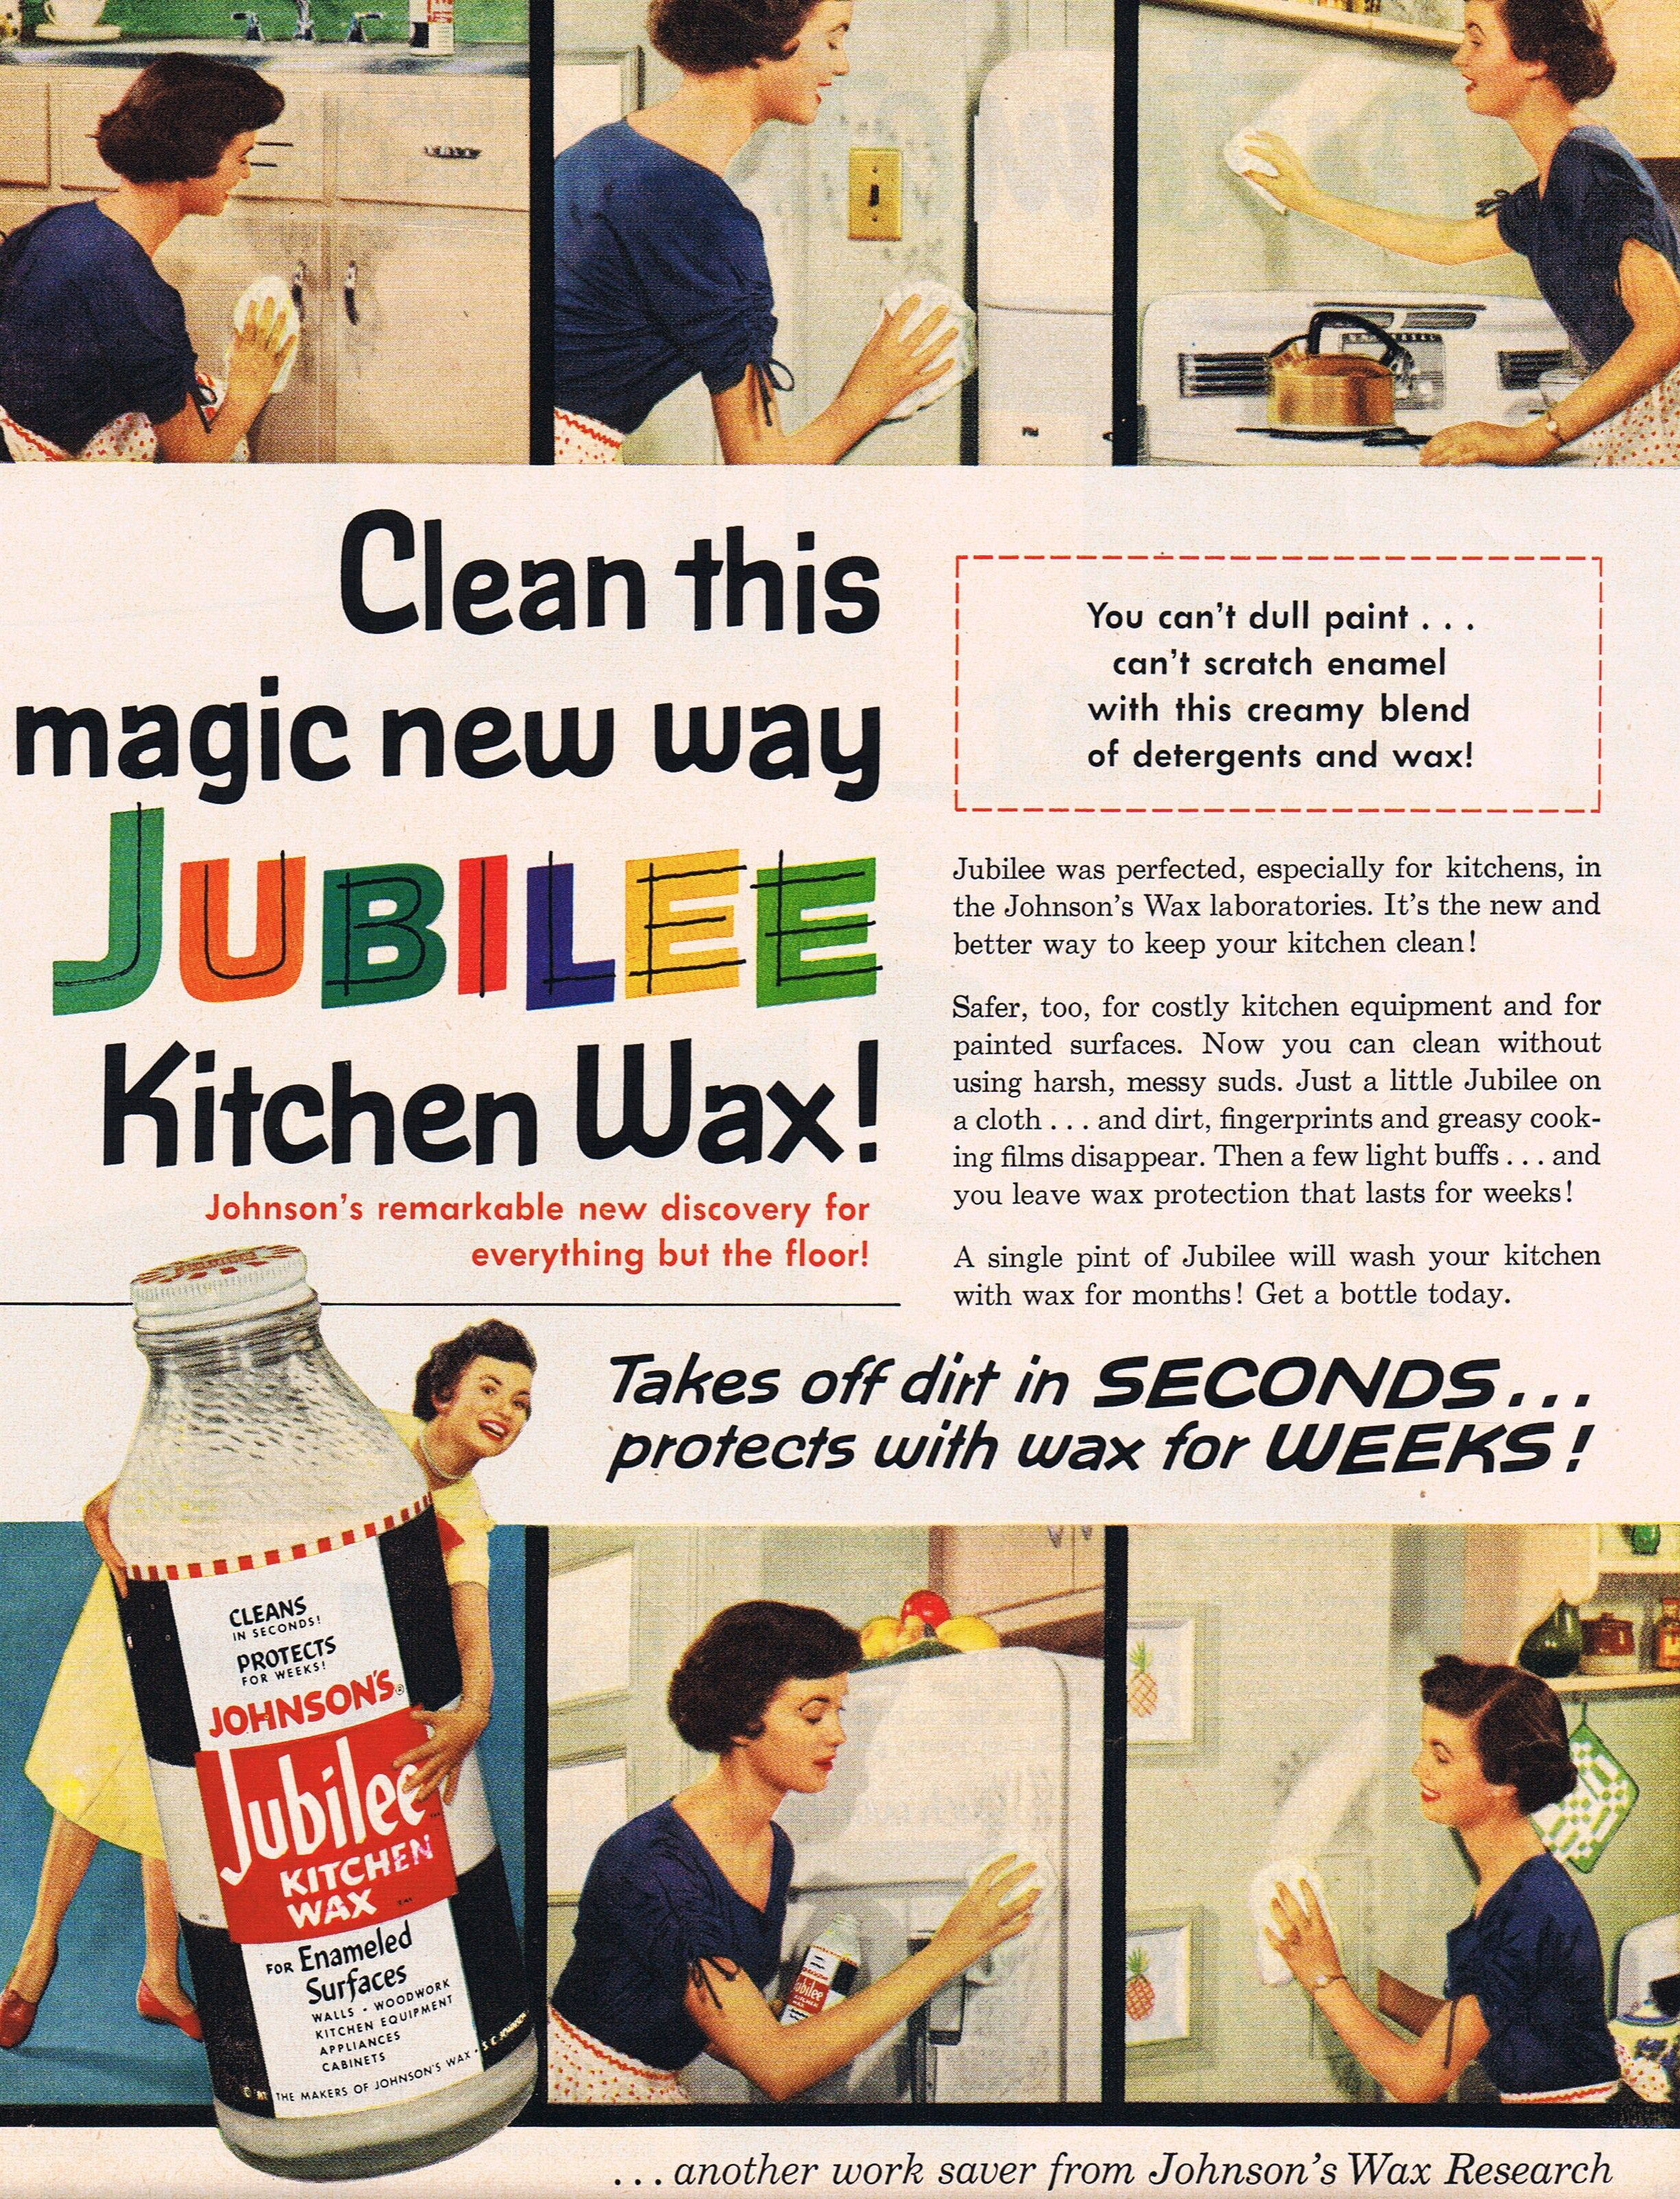 jubilee kitchen wax grandmother had this under the kitchen sink to clean the refrigerator and stove it went on white then you buffed it out like car wax - Jubilee Kitchen Wax